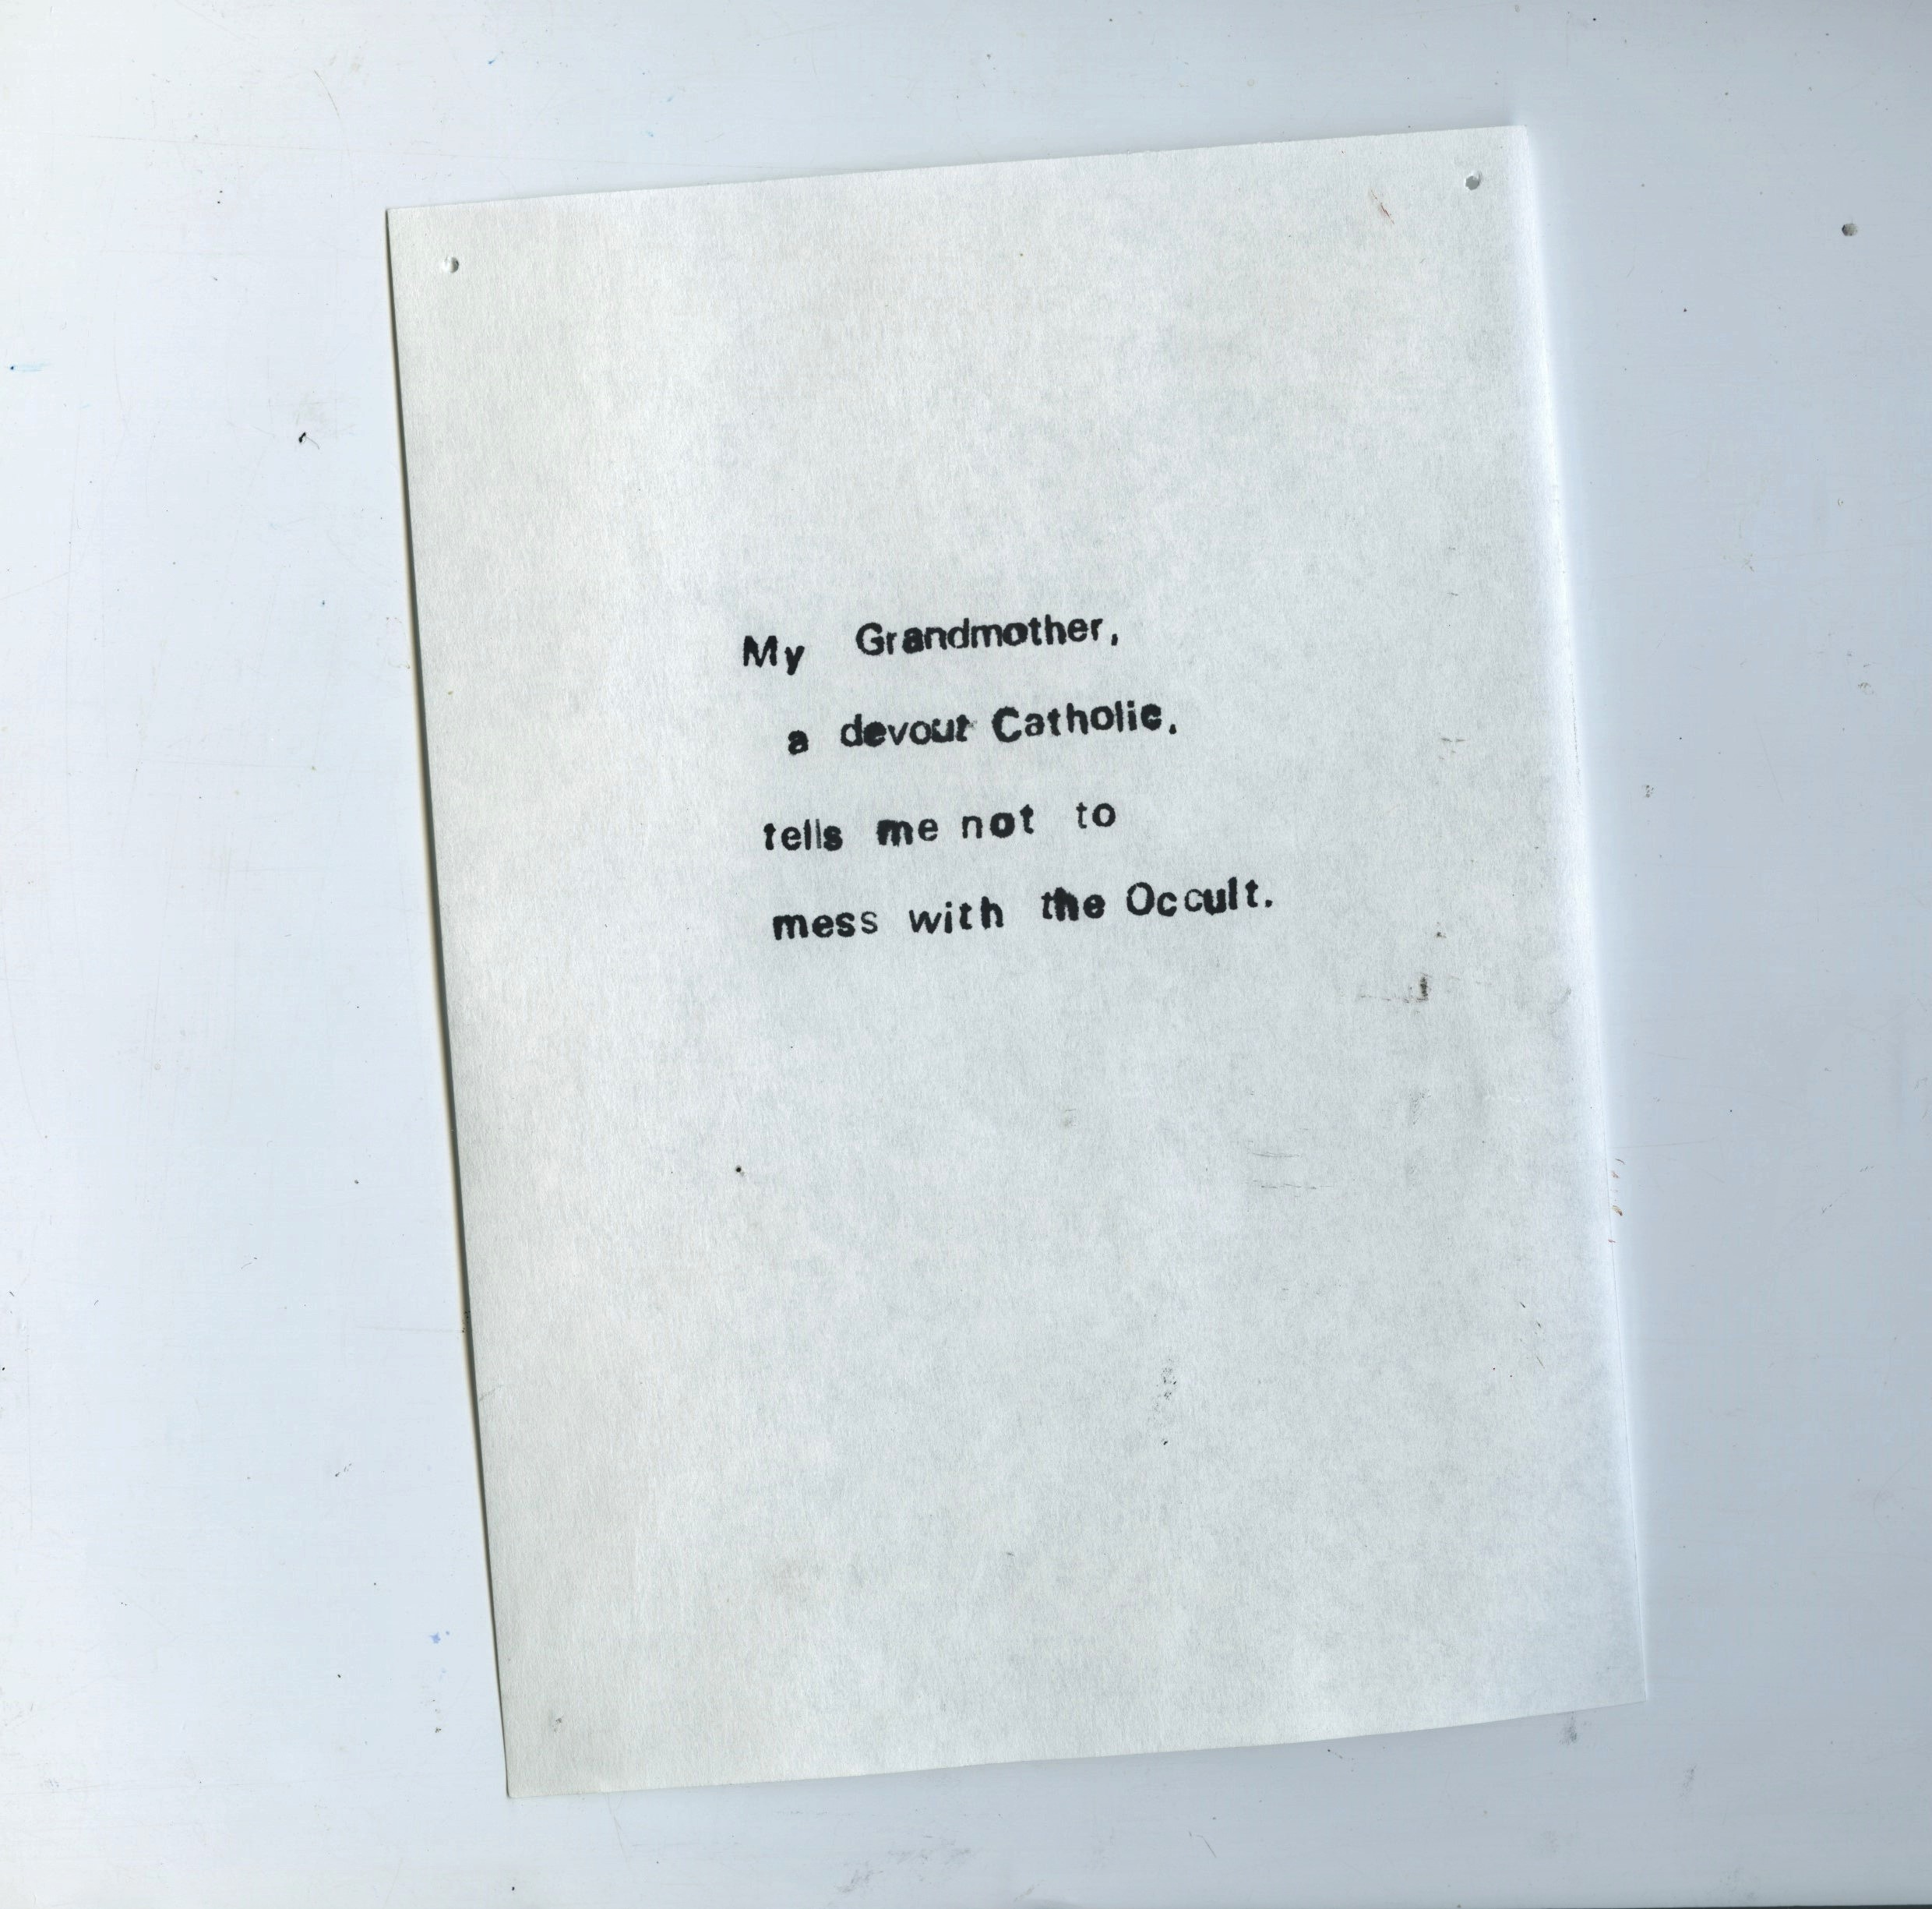 """Scanned sheet of Bible paper with text printed on it in black ink. The text reads: """"My Grandmother, a Devout Catholic, tells me not to mess with the occult""""."""